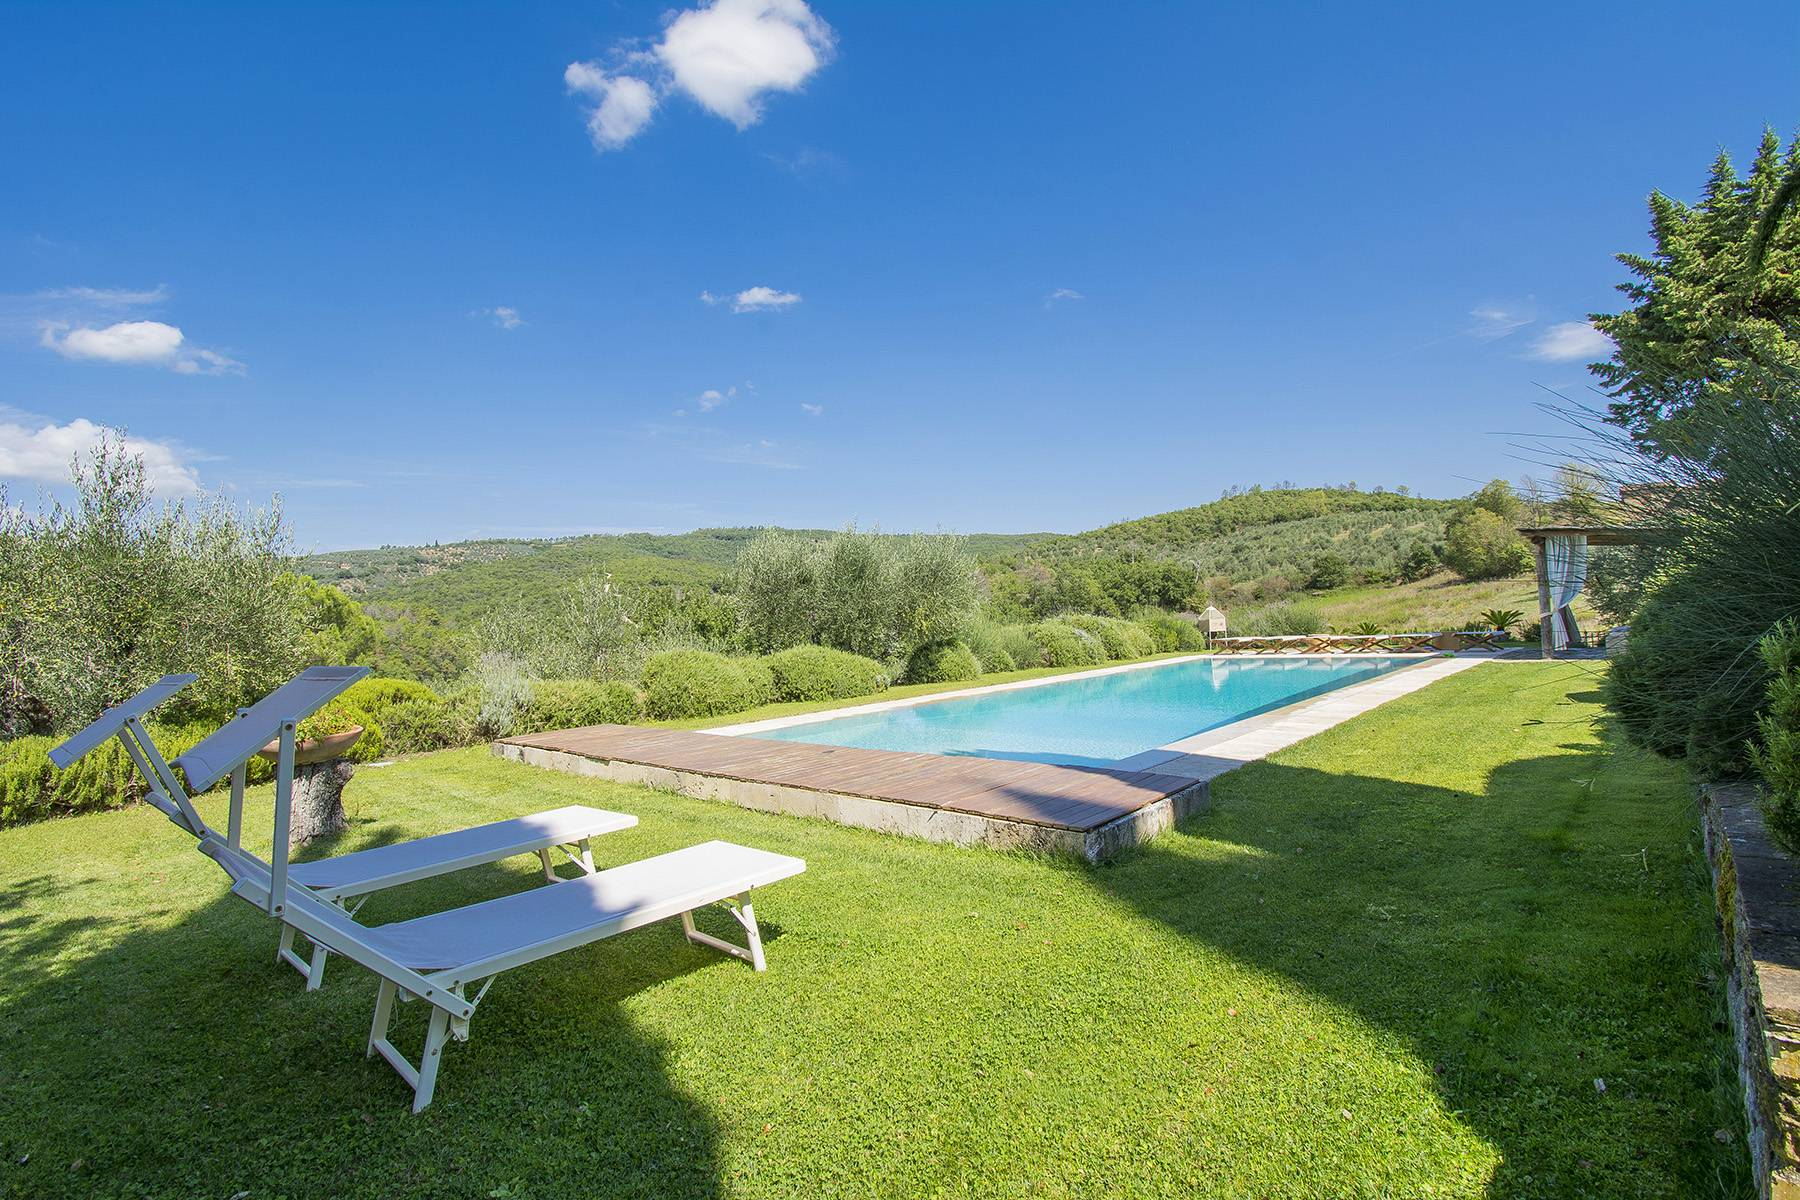 House in the Tuscan Hills for Sale - 23